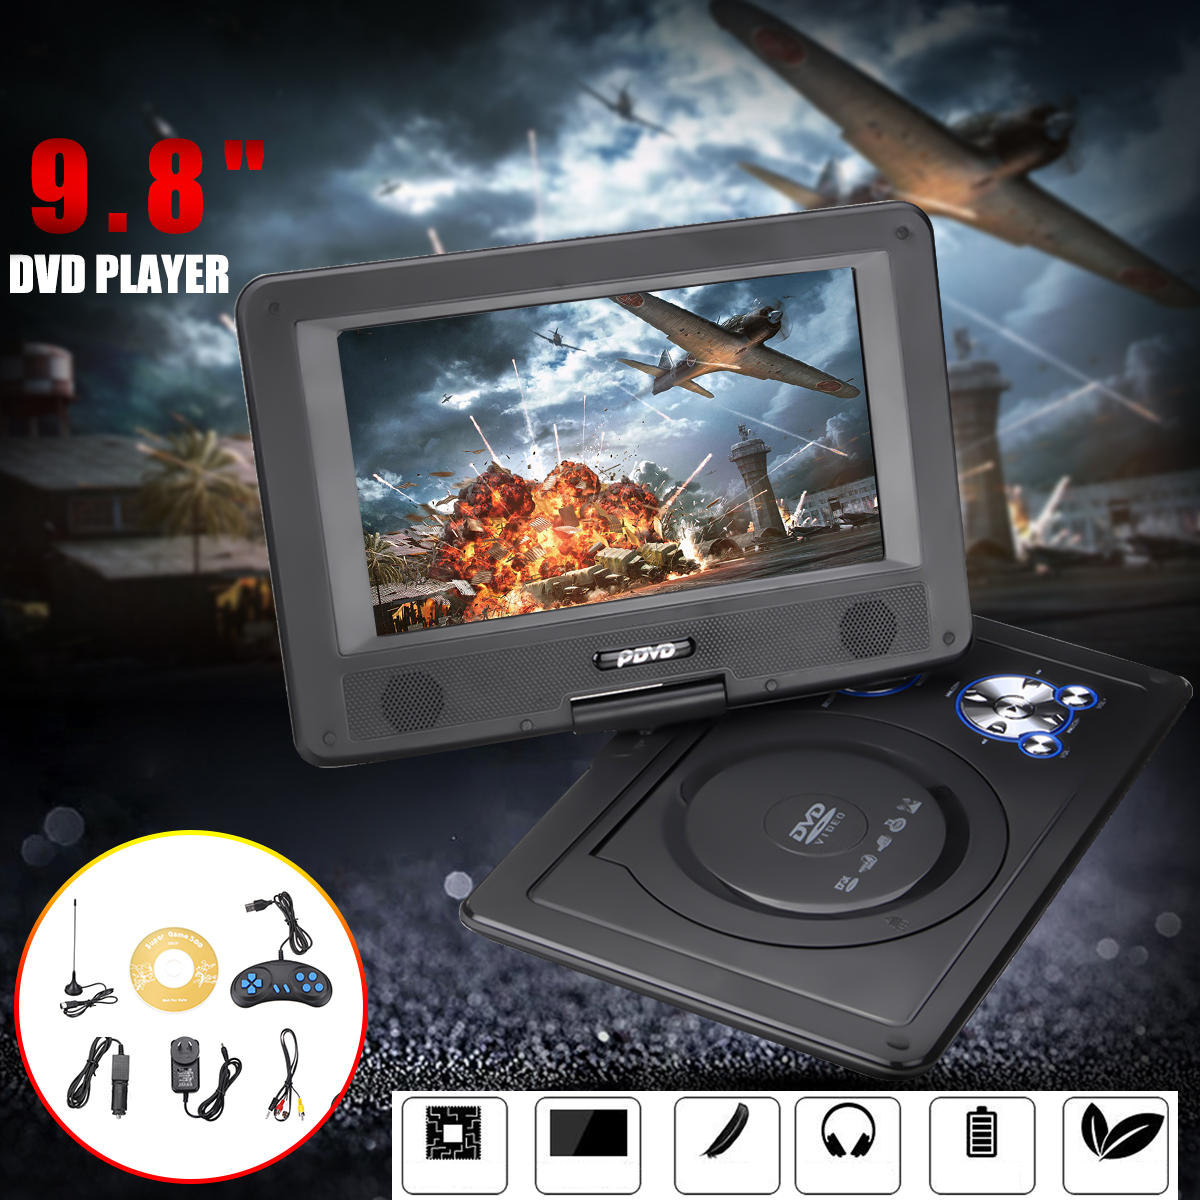 9.8 Inch Portable HD DVD Player Rotating Screen FM VCD CD MP3 Mp4 TV Player Multimedia Player Car DVD Player with Gamepad стоимость